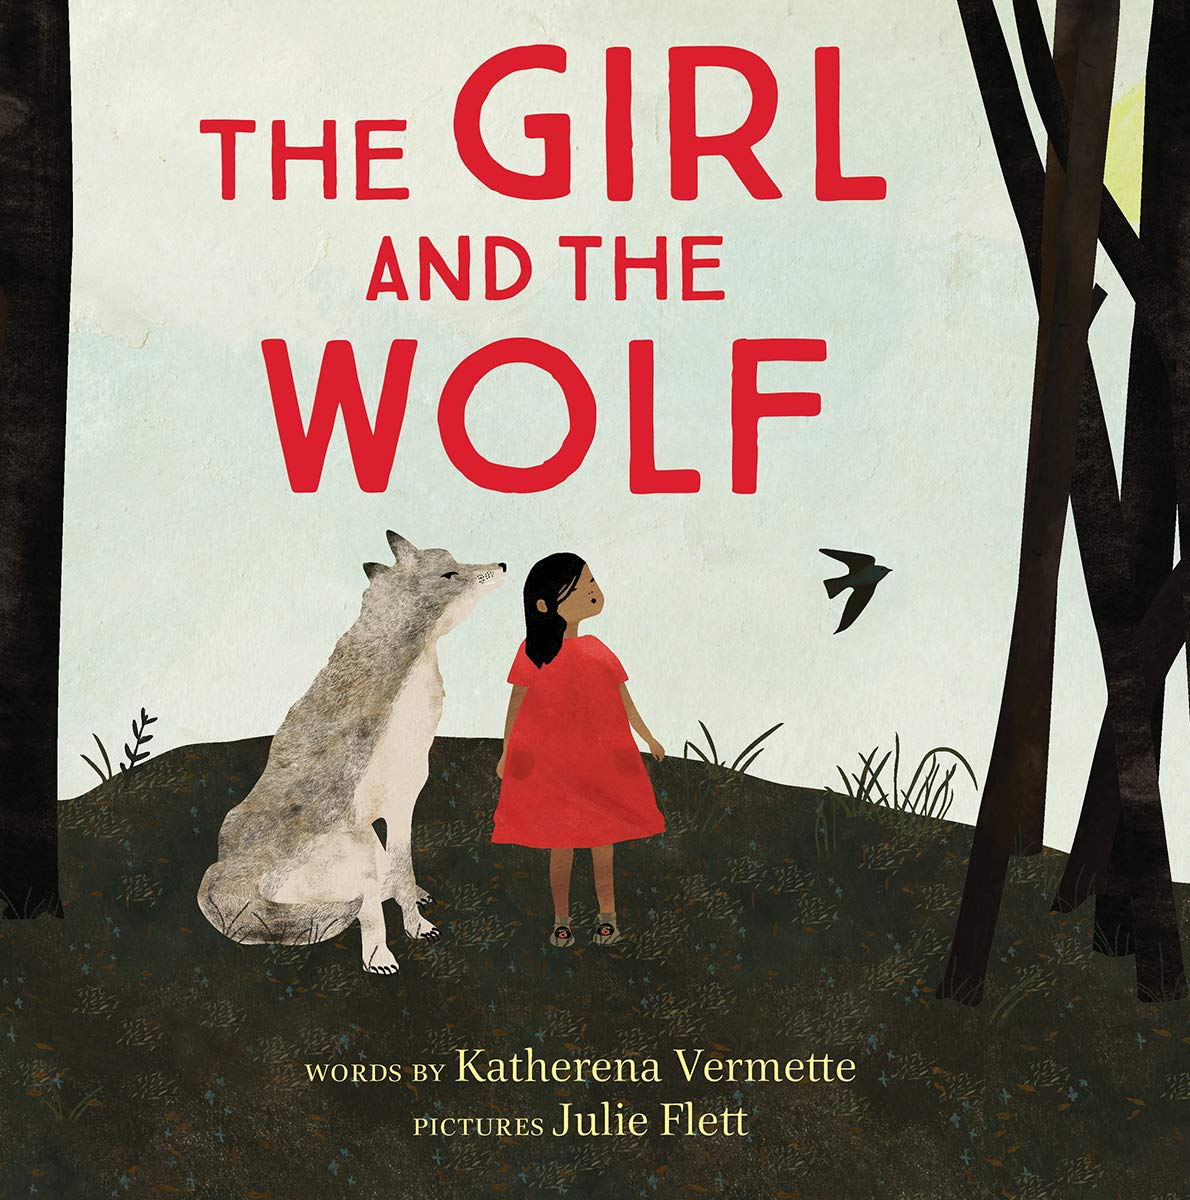 Book Cover of The Girl and the Wolf by Katherena Vermette